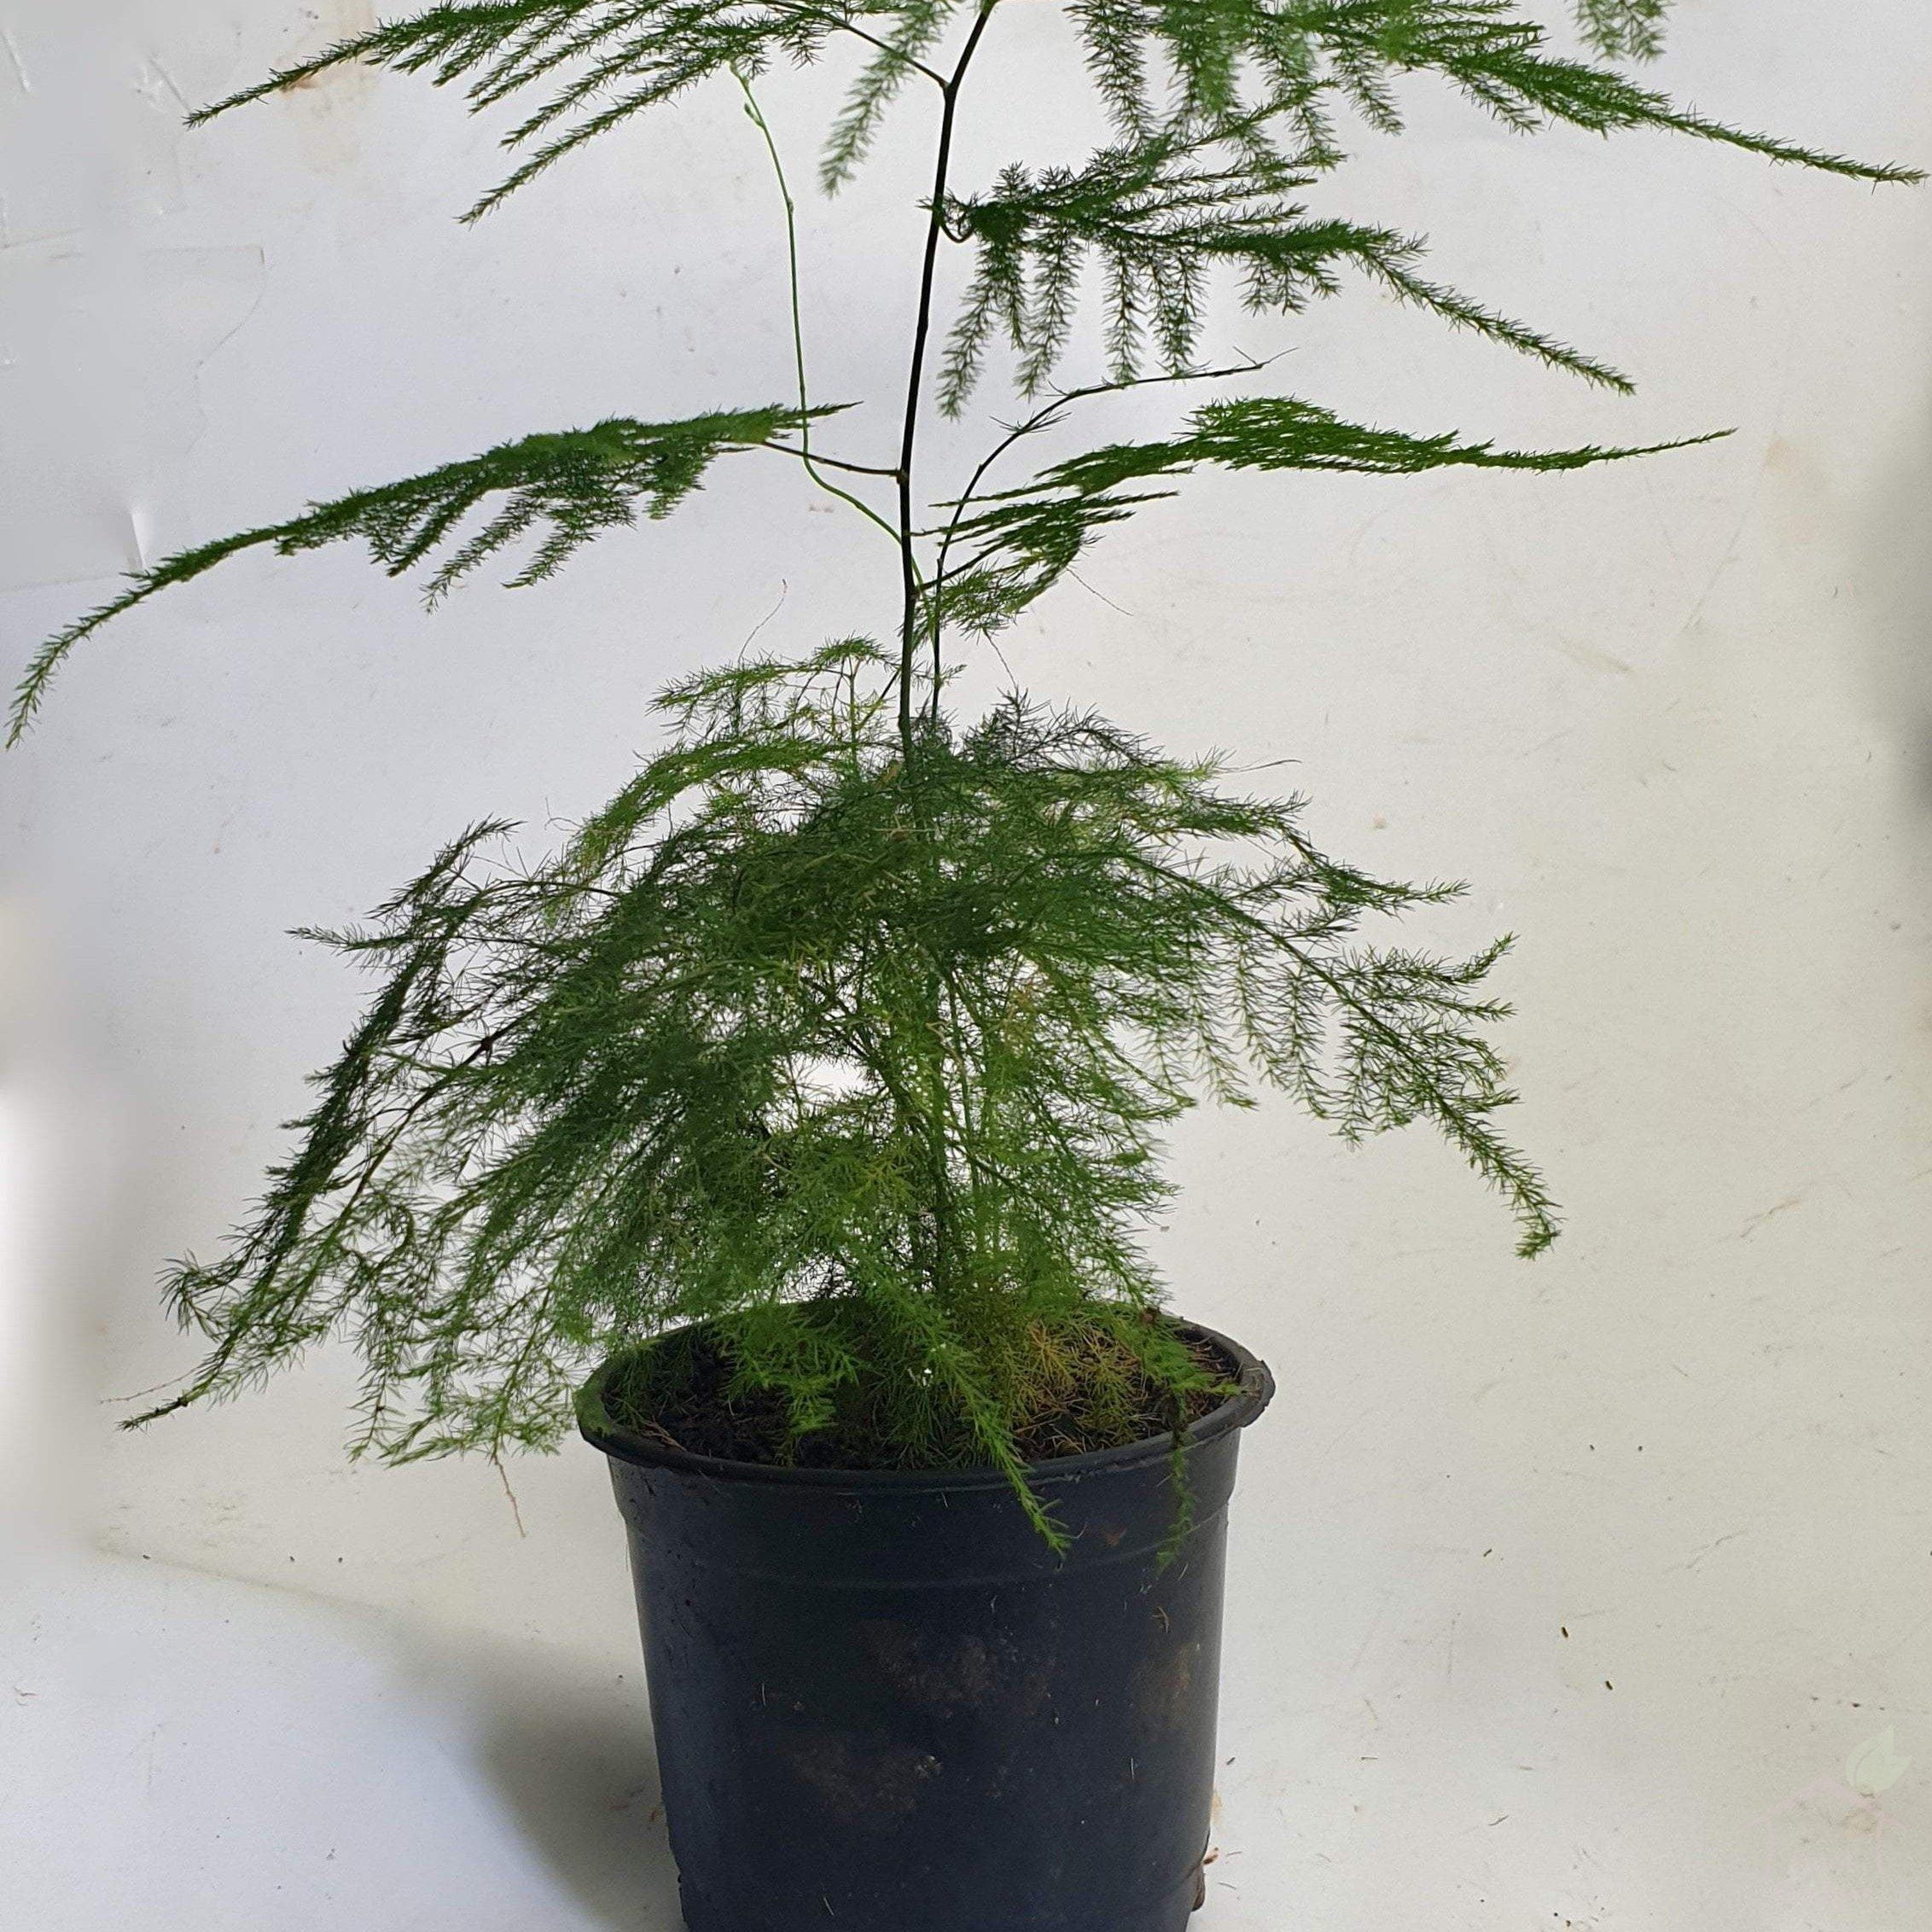 Asparagus Plumosa Fern Buy Plants Online Root Bridges